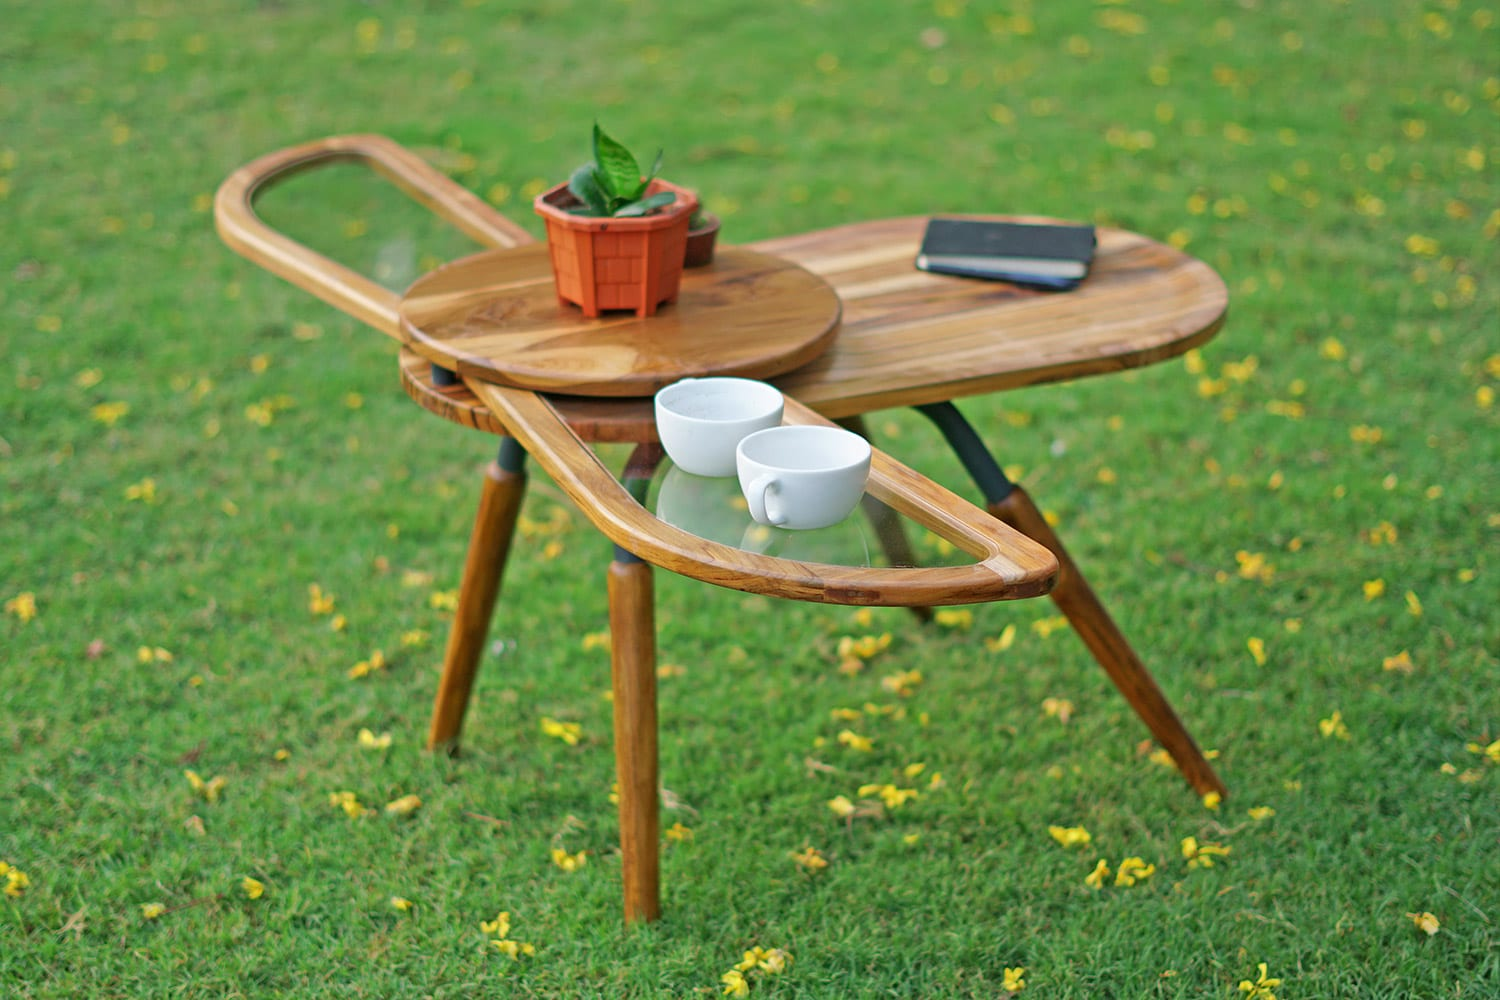 Elytra: The Beetle-Shaped Coffee Table With Fold-Out Wings!